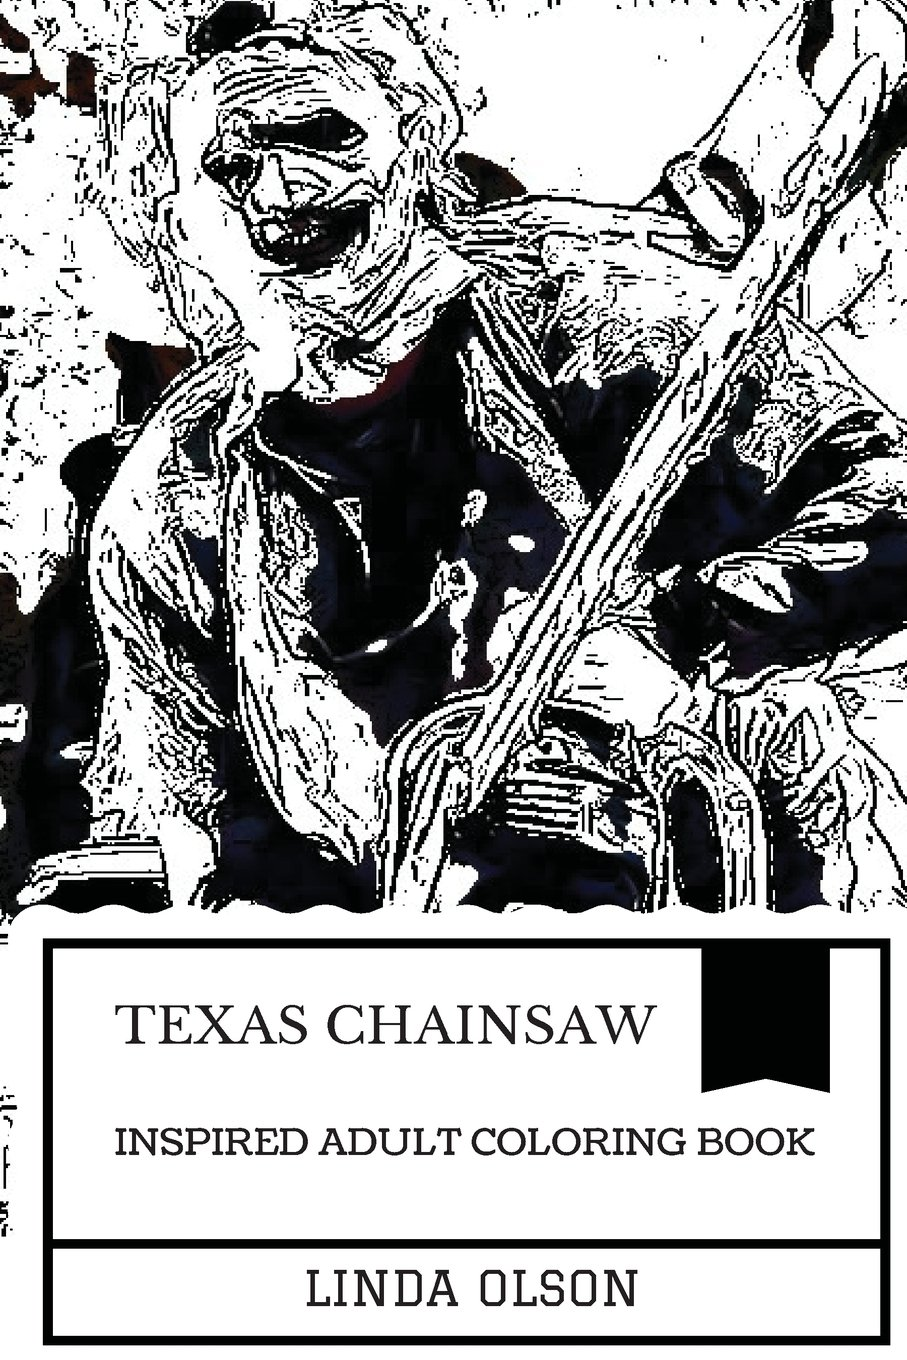 Texas Chainsaw Inspired Adult Coloring Book  Leatherface Art And